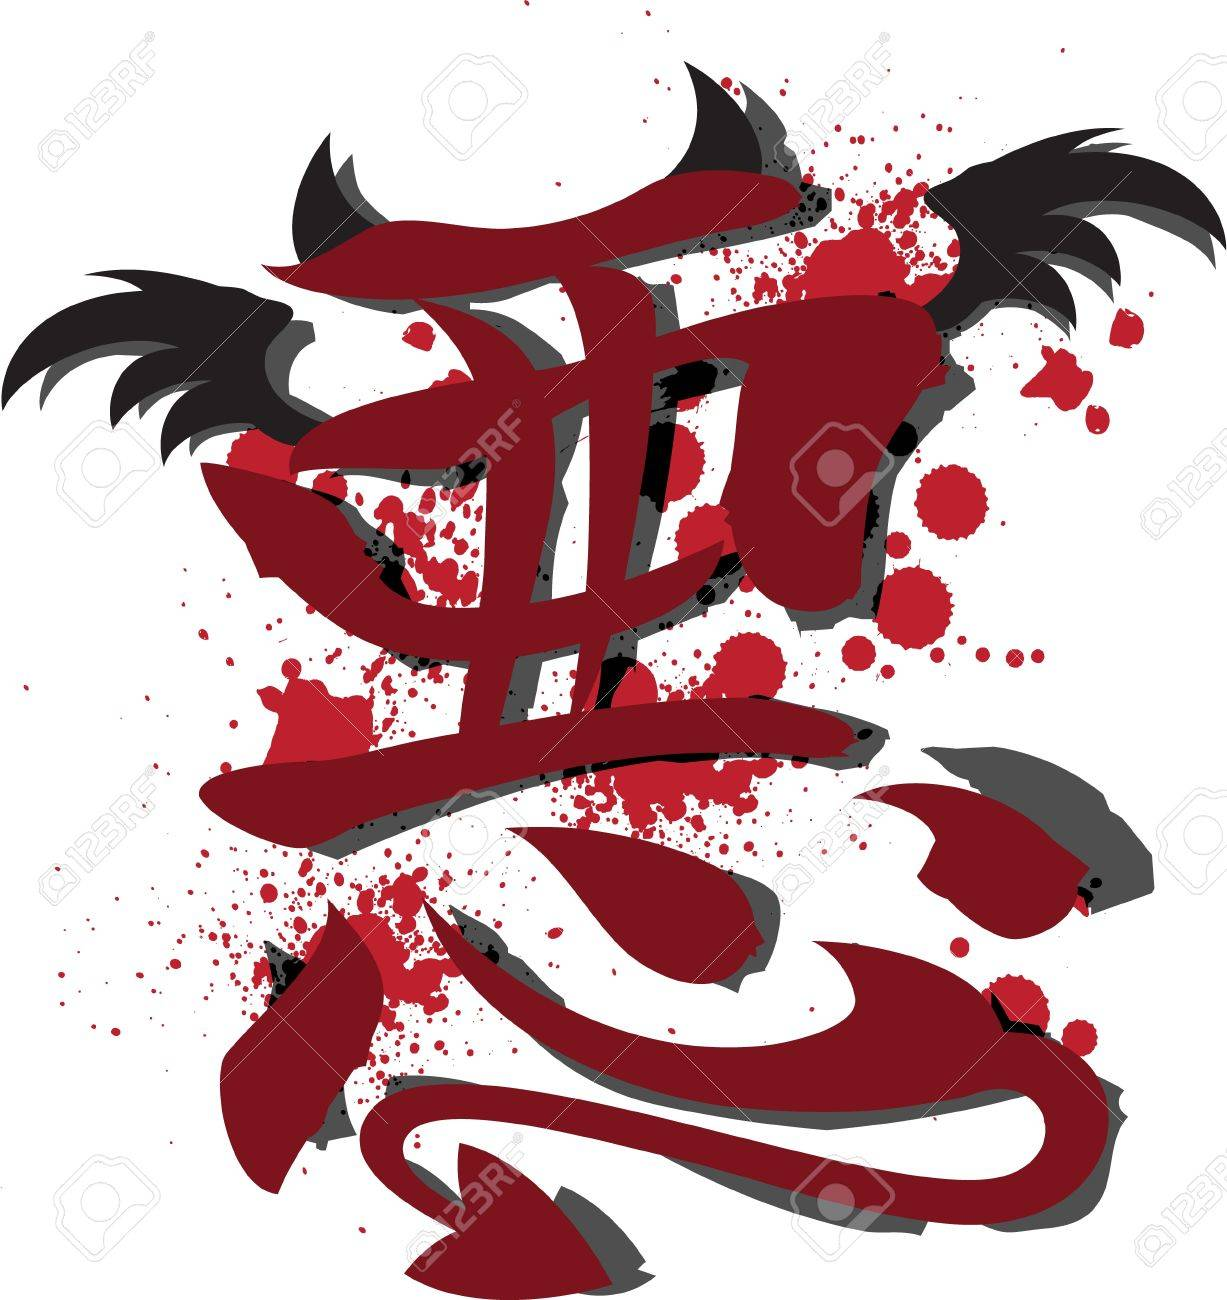 Japanese demon tattoo symbolism images for tatouage japanese demon tattoo symbolism throughout the japanese kanji symbol for evil the symbol itself has been buycottarizona